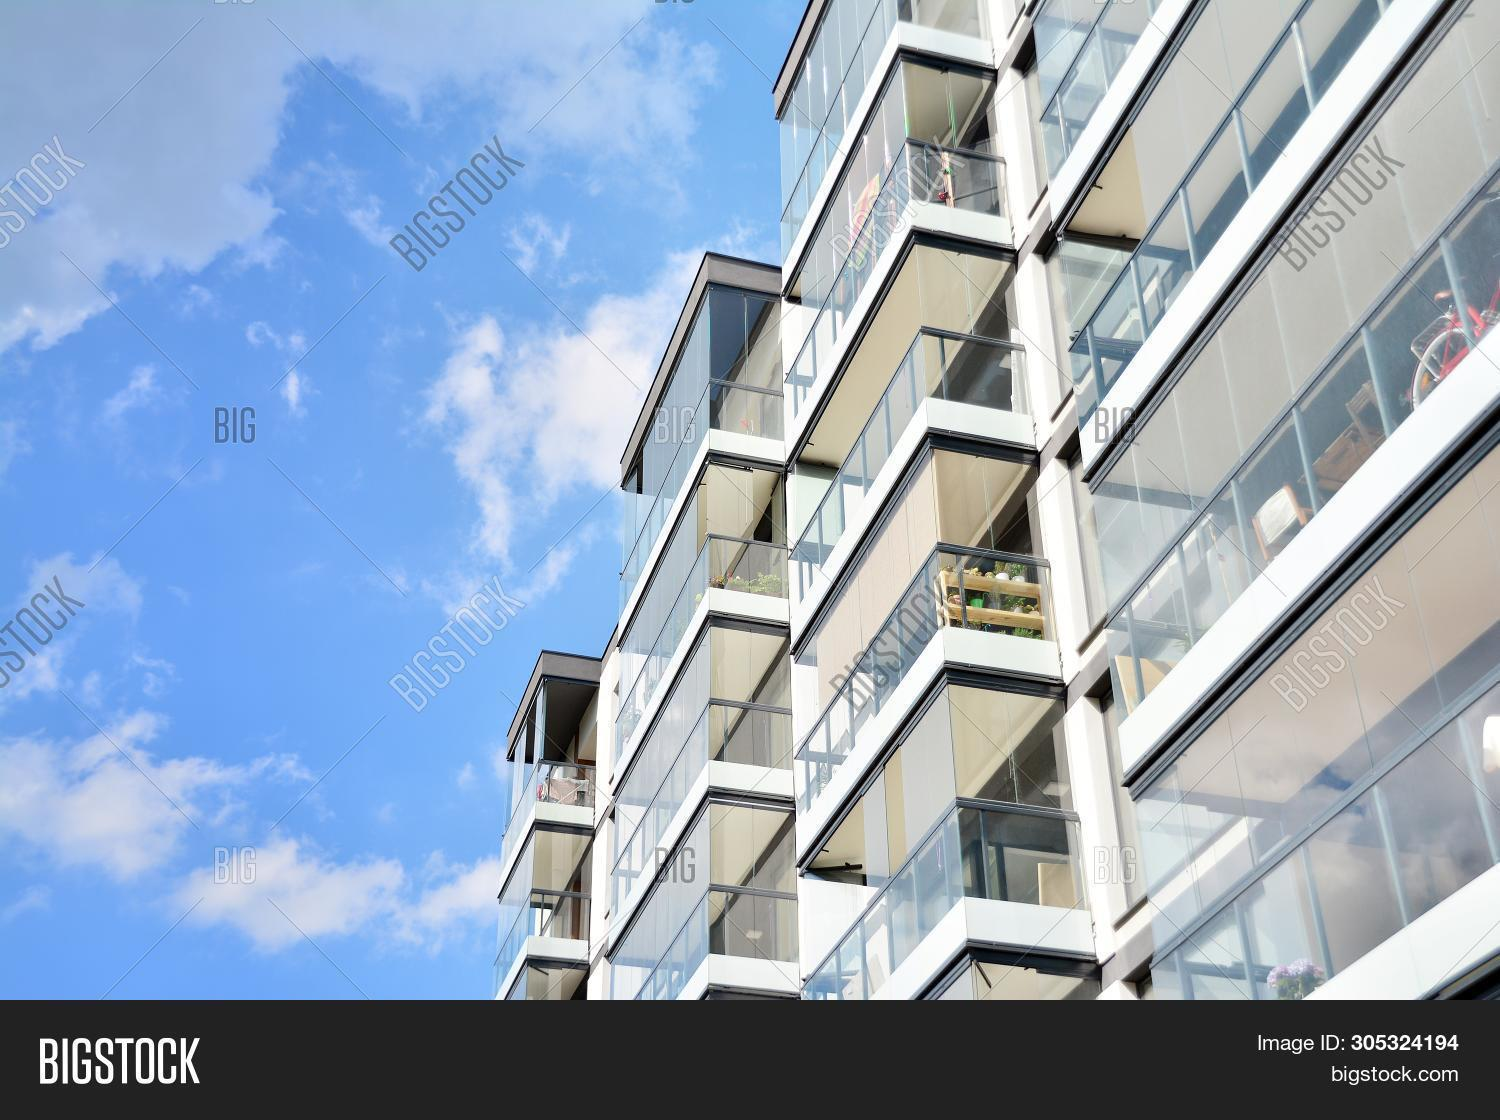 apartments,architectural,architecture,balcony,beautiful,block,blue,building,capital,condominium,construction,contemporary,credit,detail,estate,exterior,facade,flats,glass,home,house,household,lifestyle,luxury,modern,mortgage,neighborhood,new,portugal,private,property,real,rent,residence,residential,resort,sale,sky,street,style,suburban,sunny,urban,view,villa,village,window,yellow